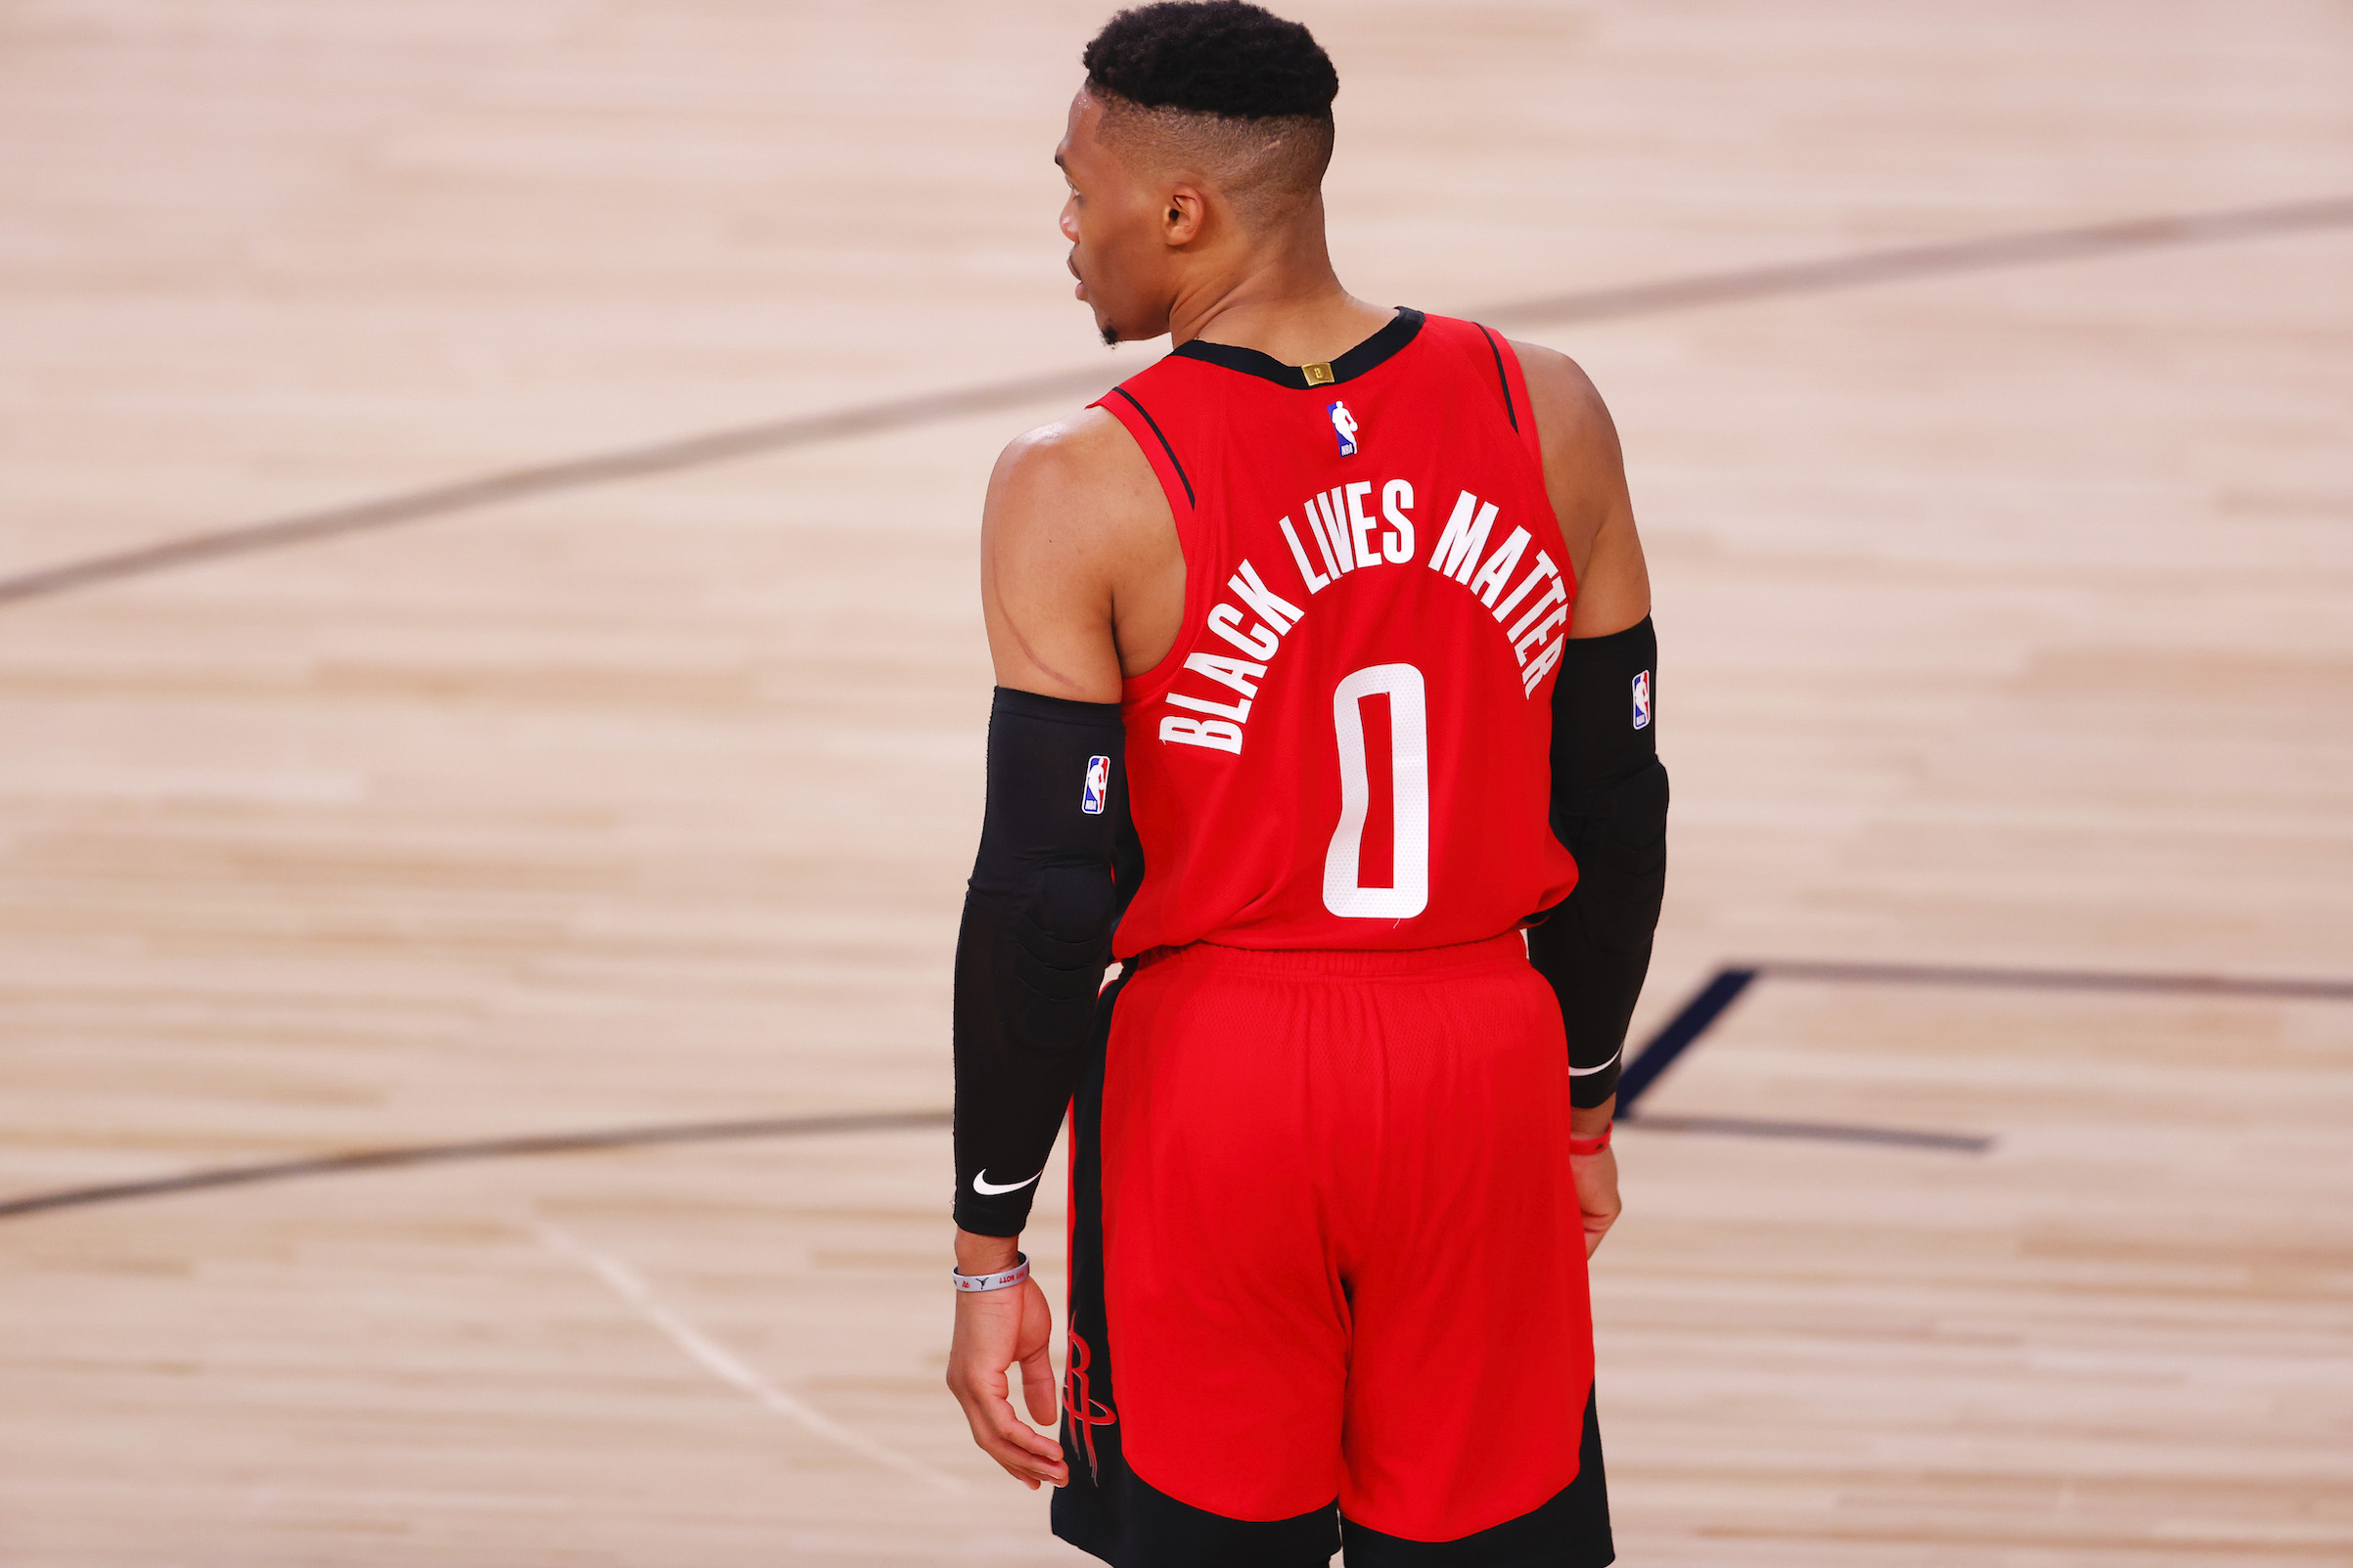 Russell Westbrook #0 of the Houston Rockets wears  Black Lives Matter  on the back of his jersey on Aug. 2, 2020 in Lake Buena Vista, Fla.